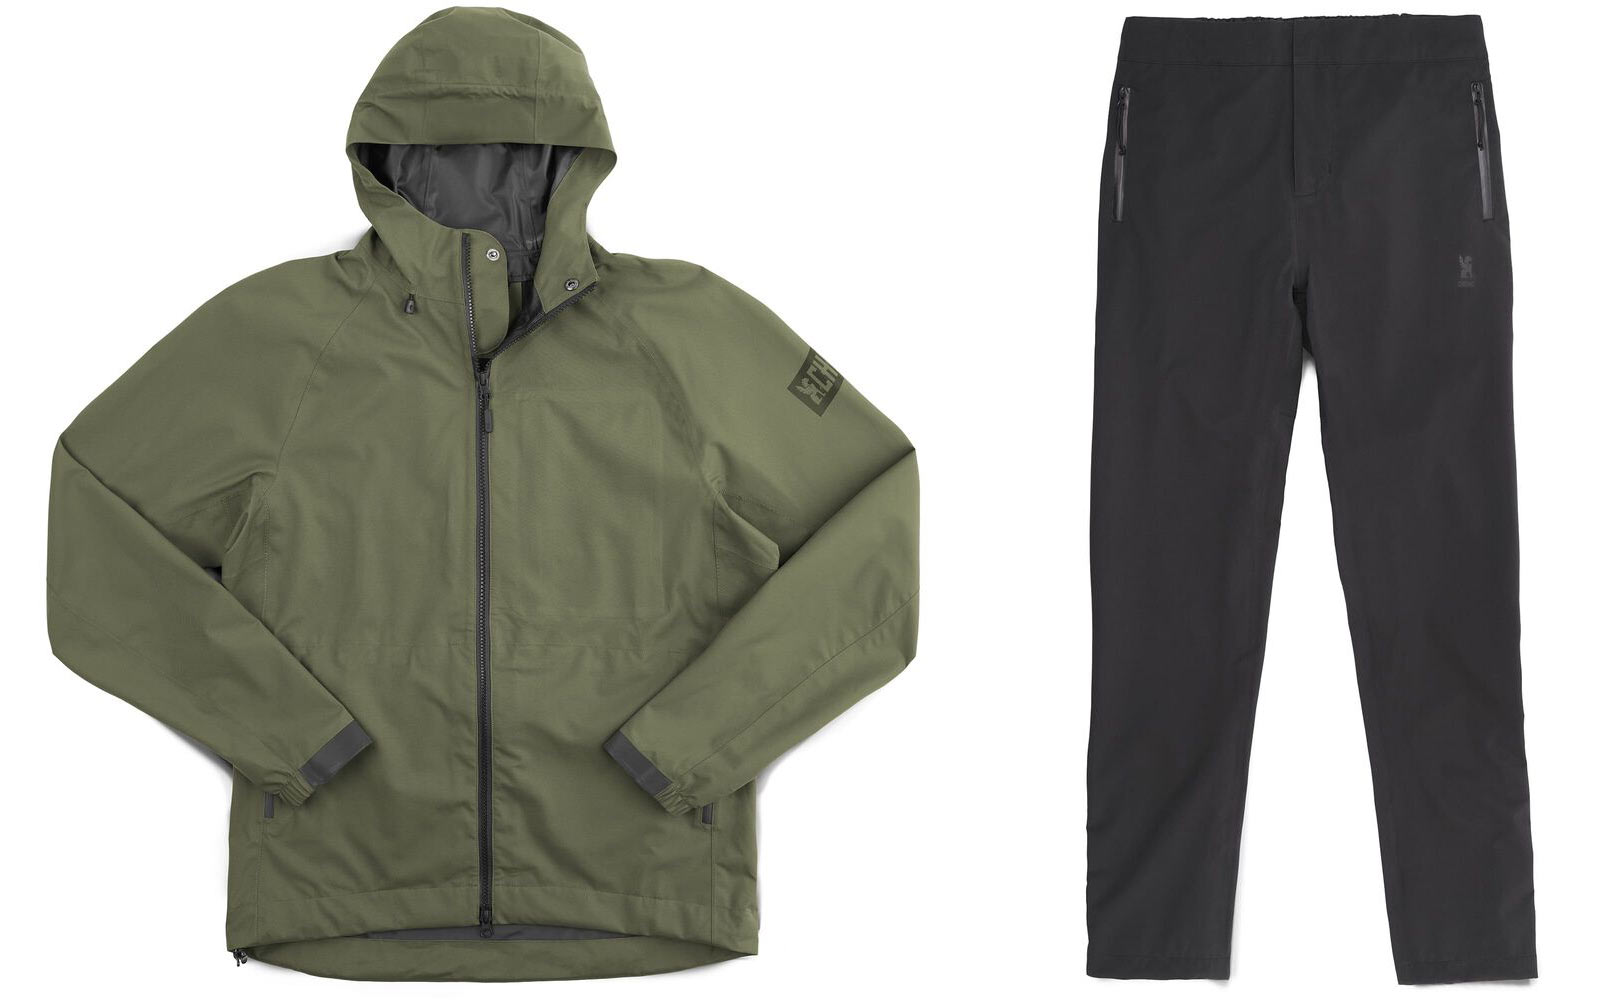 Chrome Industries storm rain pants and jacket for commuter cyclists